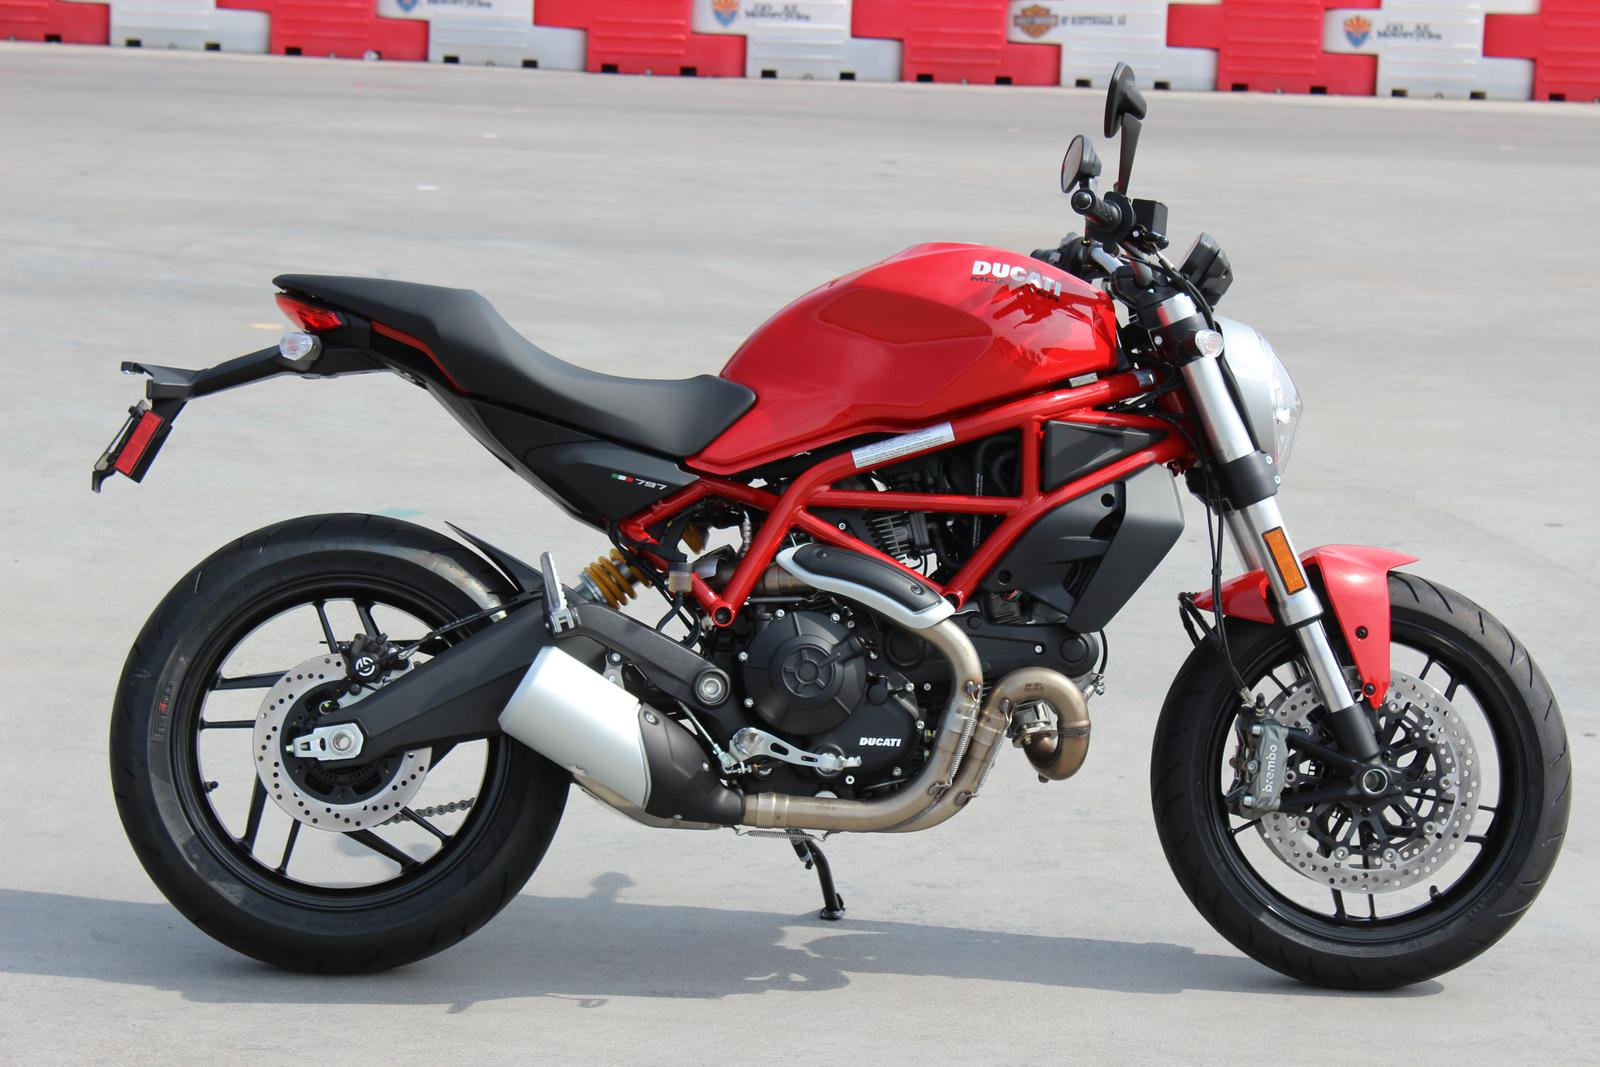 2017 ducati monster 797 for sale in scottsdale, az | go az